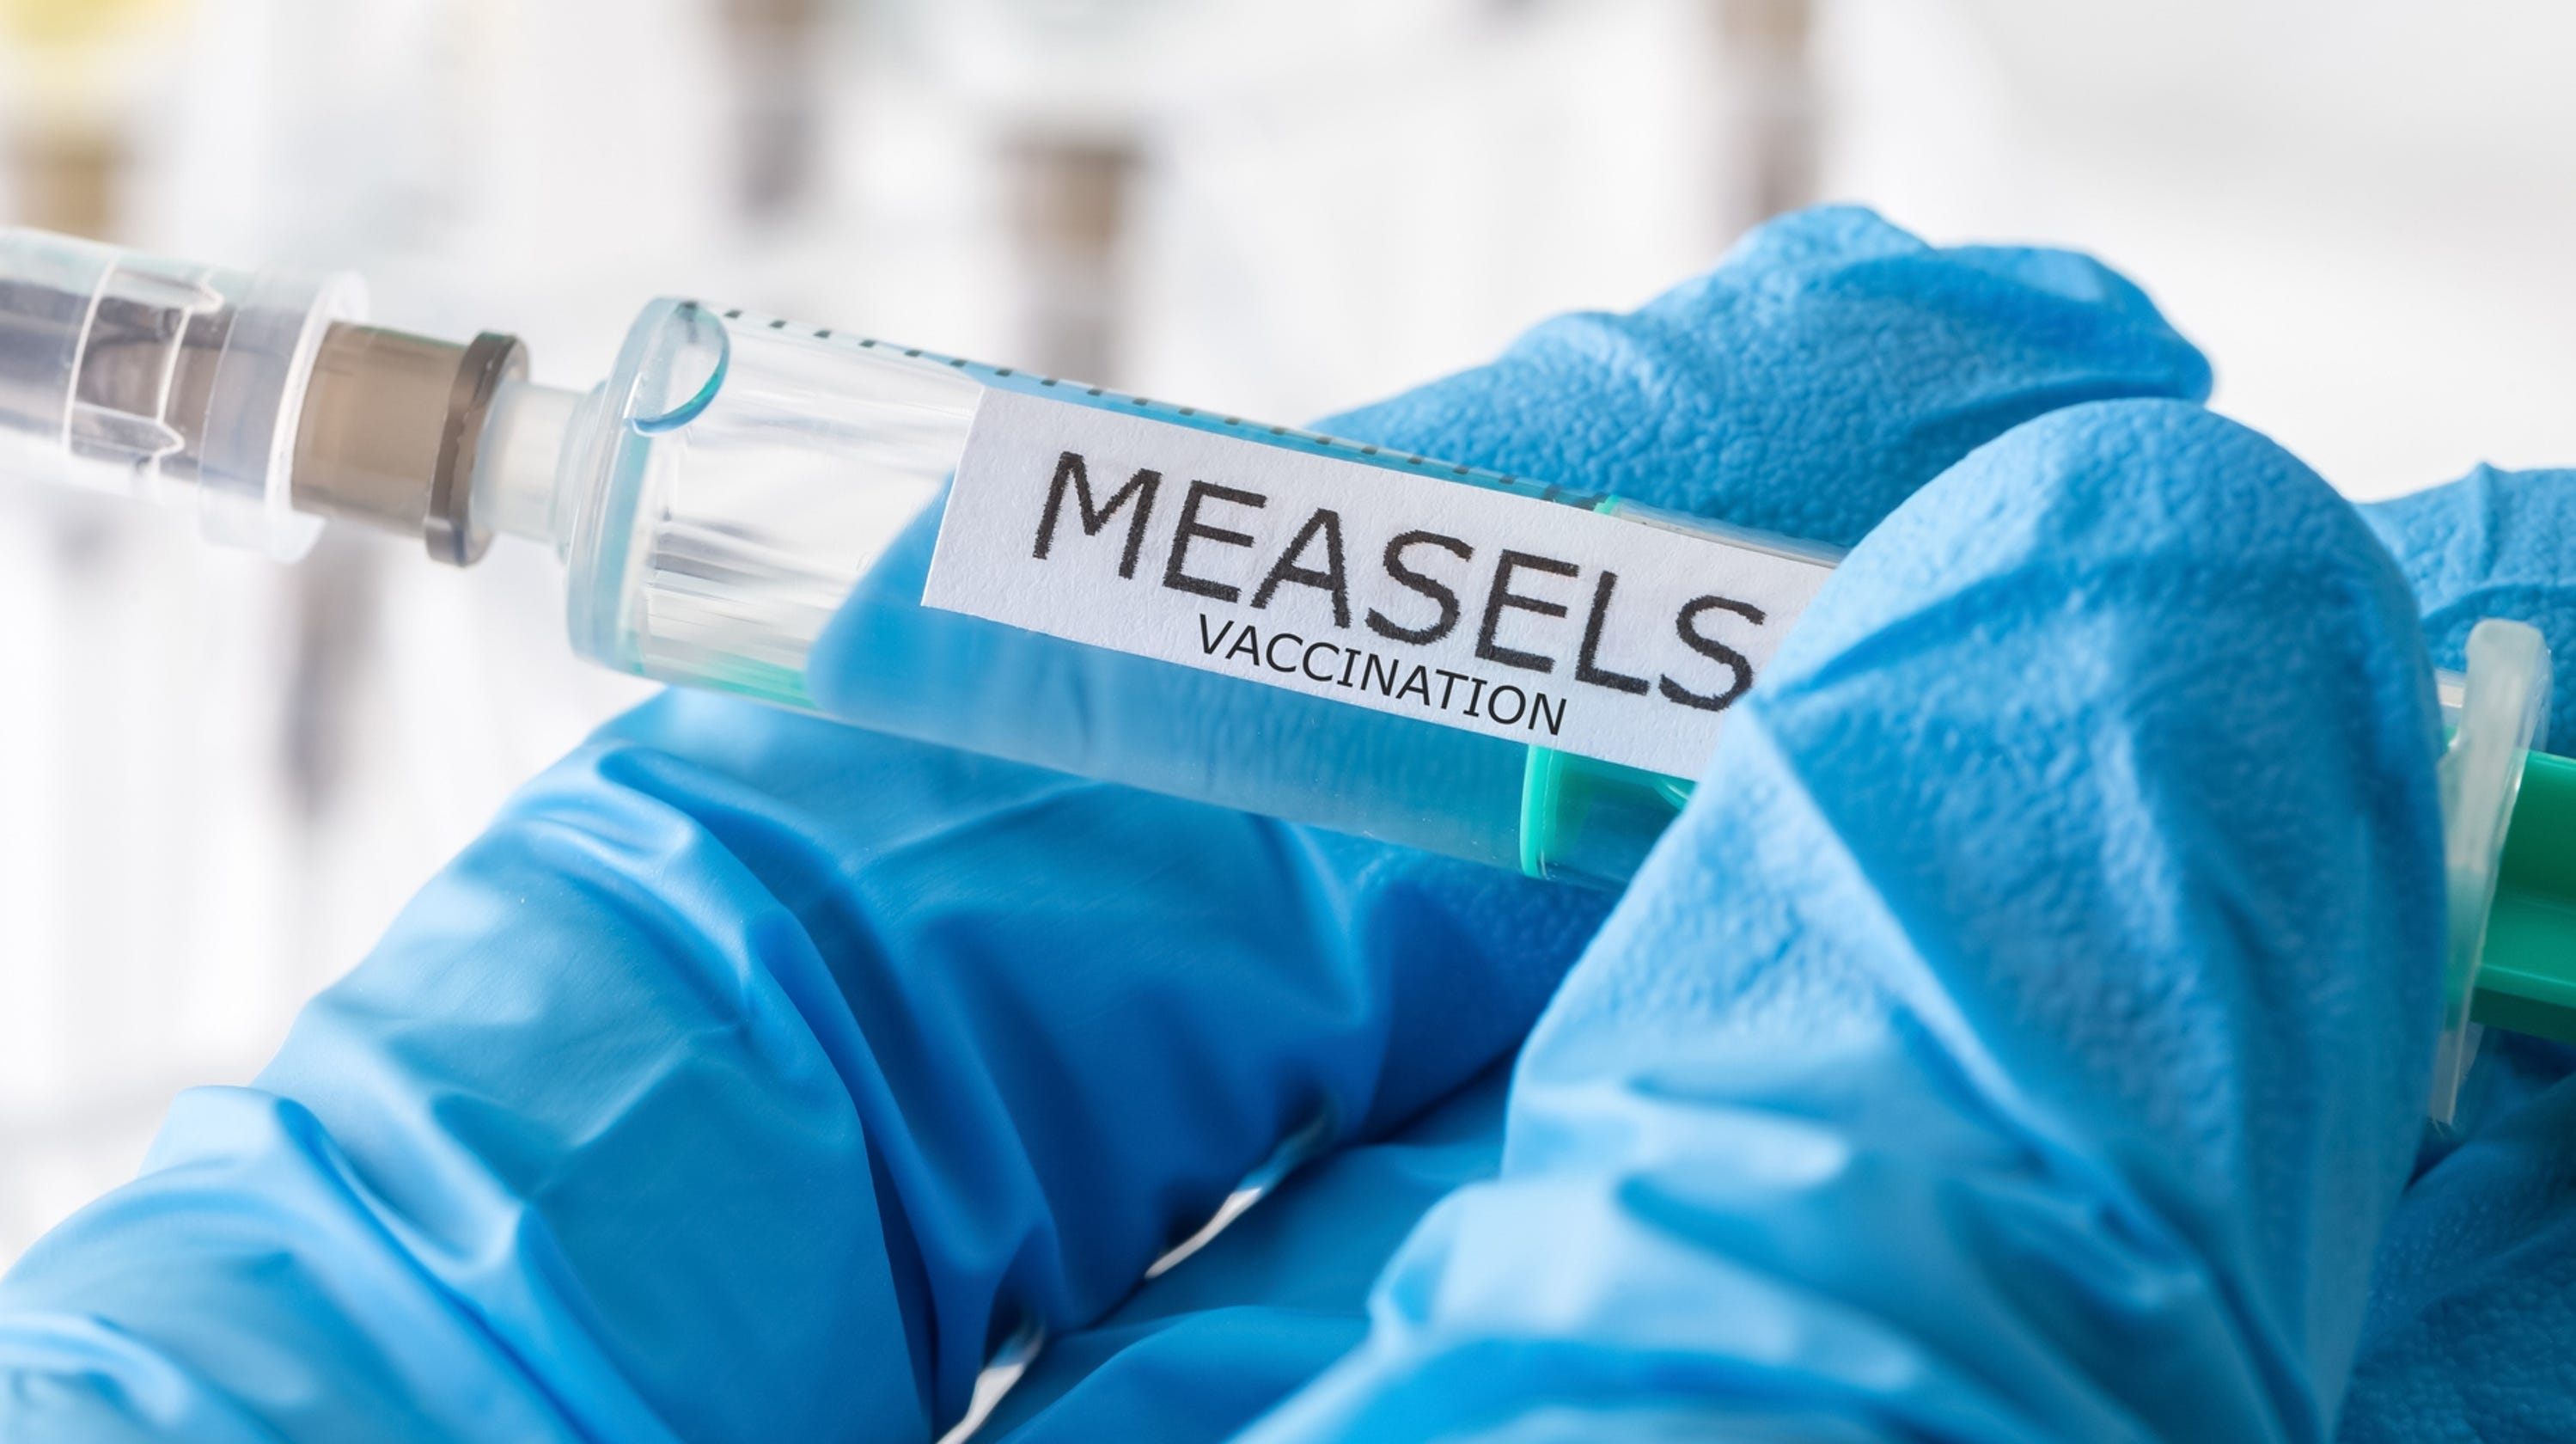 Measles cases see biggest jump this year with 555 confirmed in 20 states